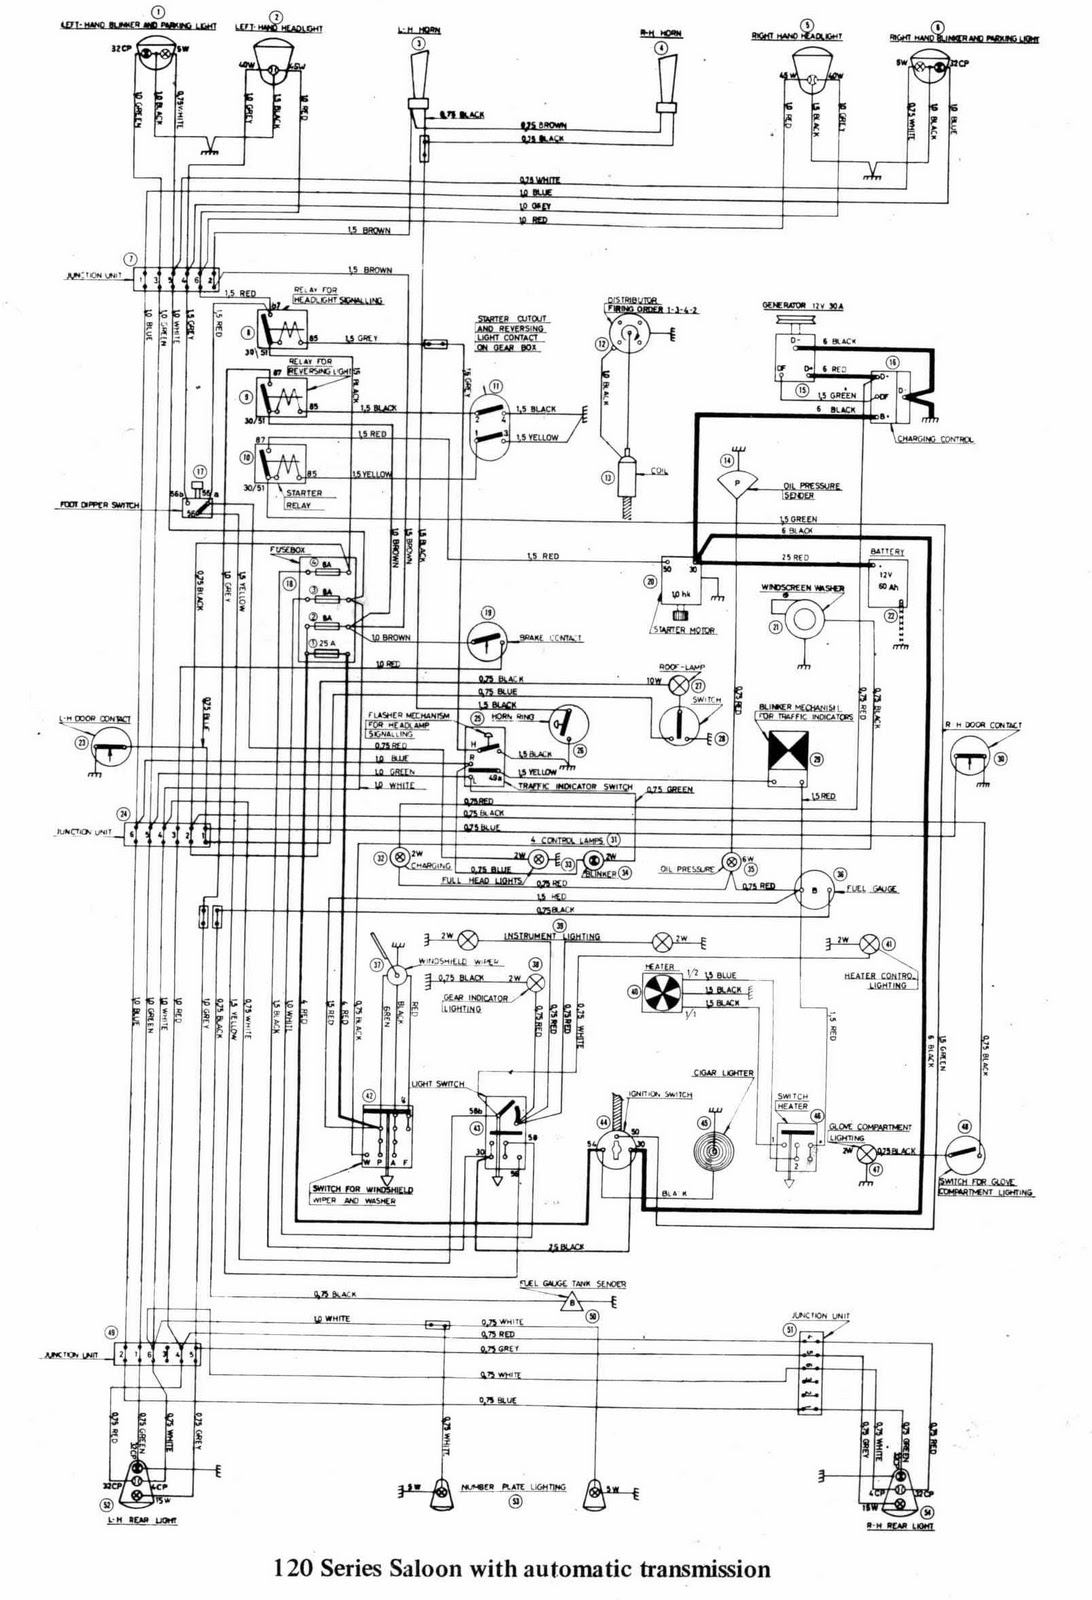 volvo 850 wiring diagram abs wiring diagrams best volvo 850 wiring diagram abs schematics wiring diagram moto guzzi 850 wiring diagram 1998 volvo s70